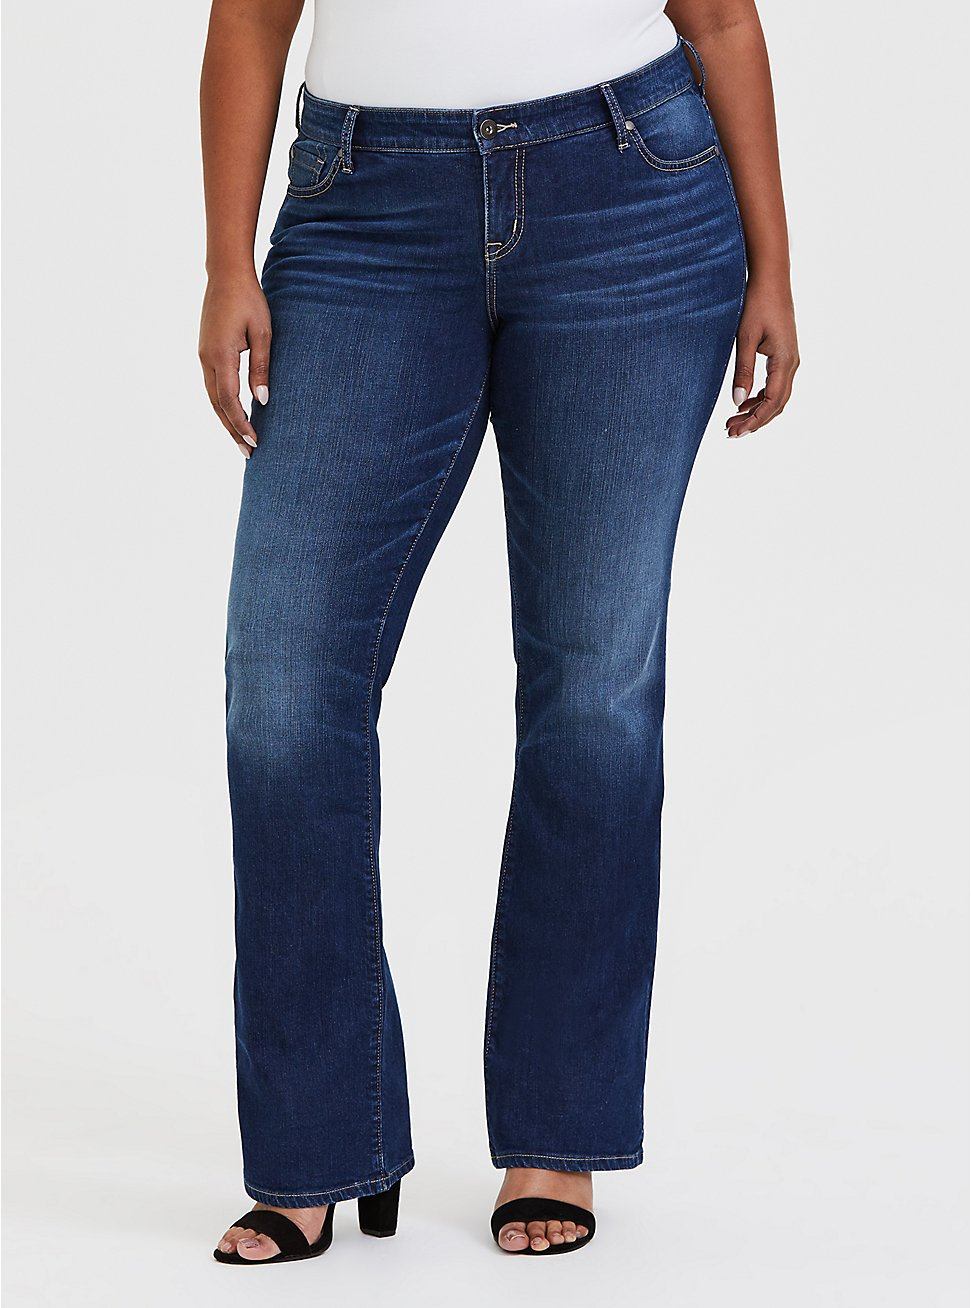 Relaxed Boot Jean - Vintage Stretch Dark Wash, PRIMO, hi-res